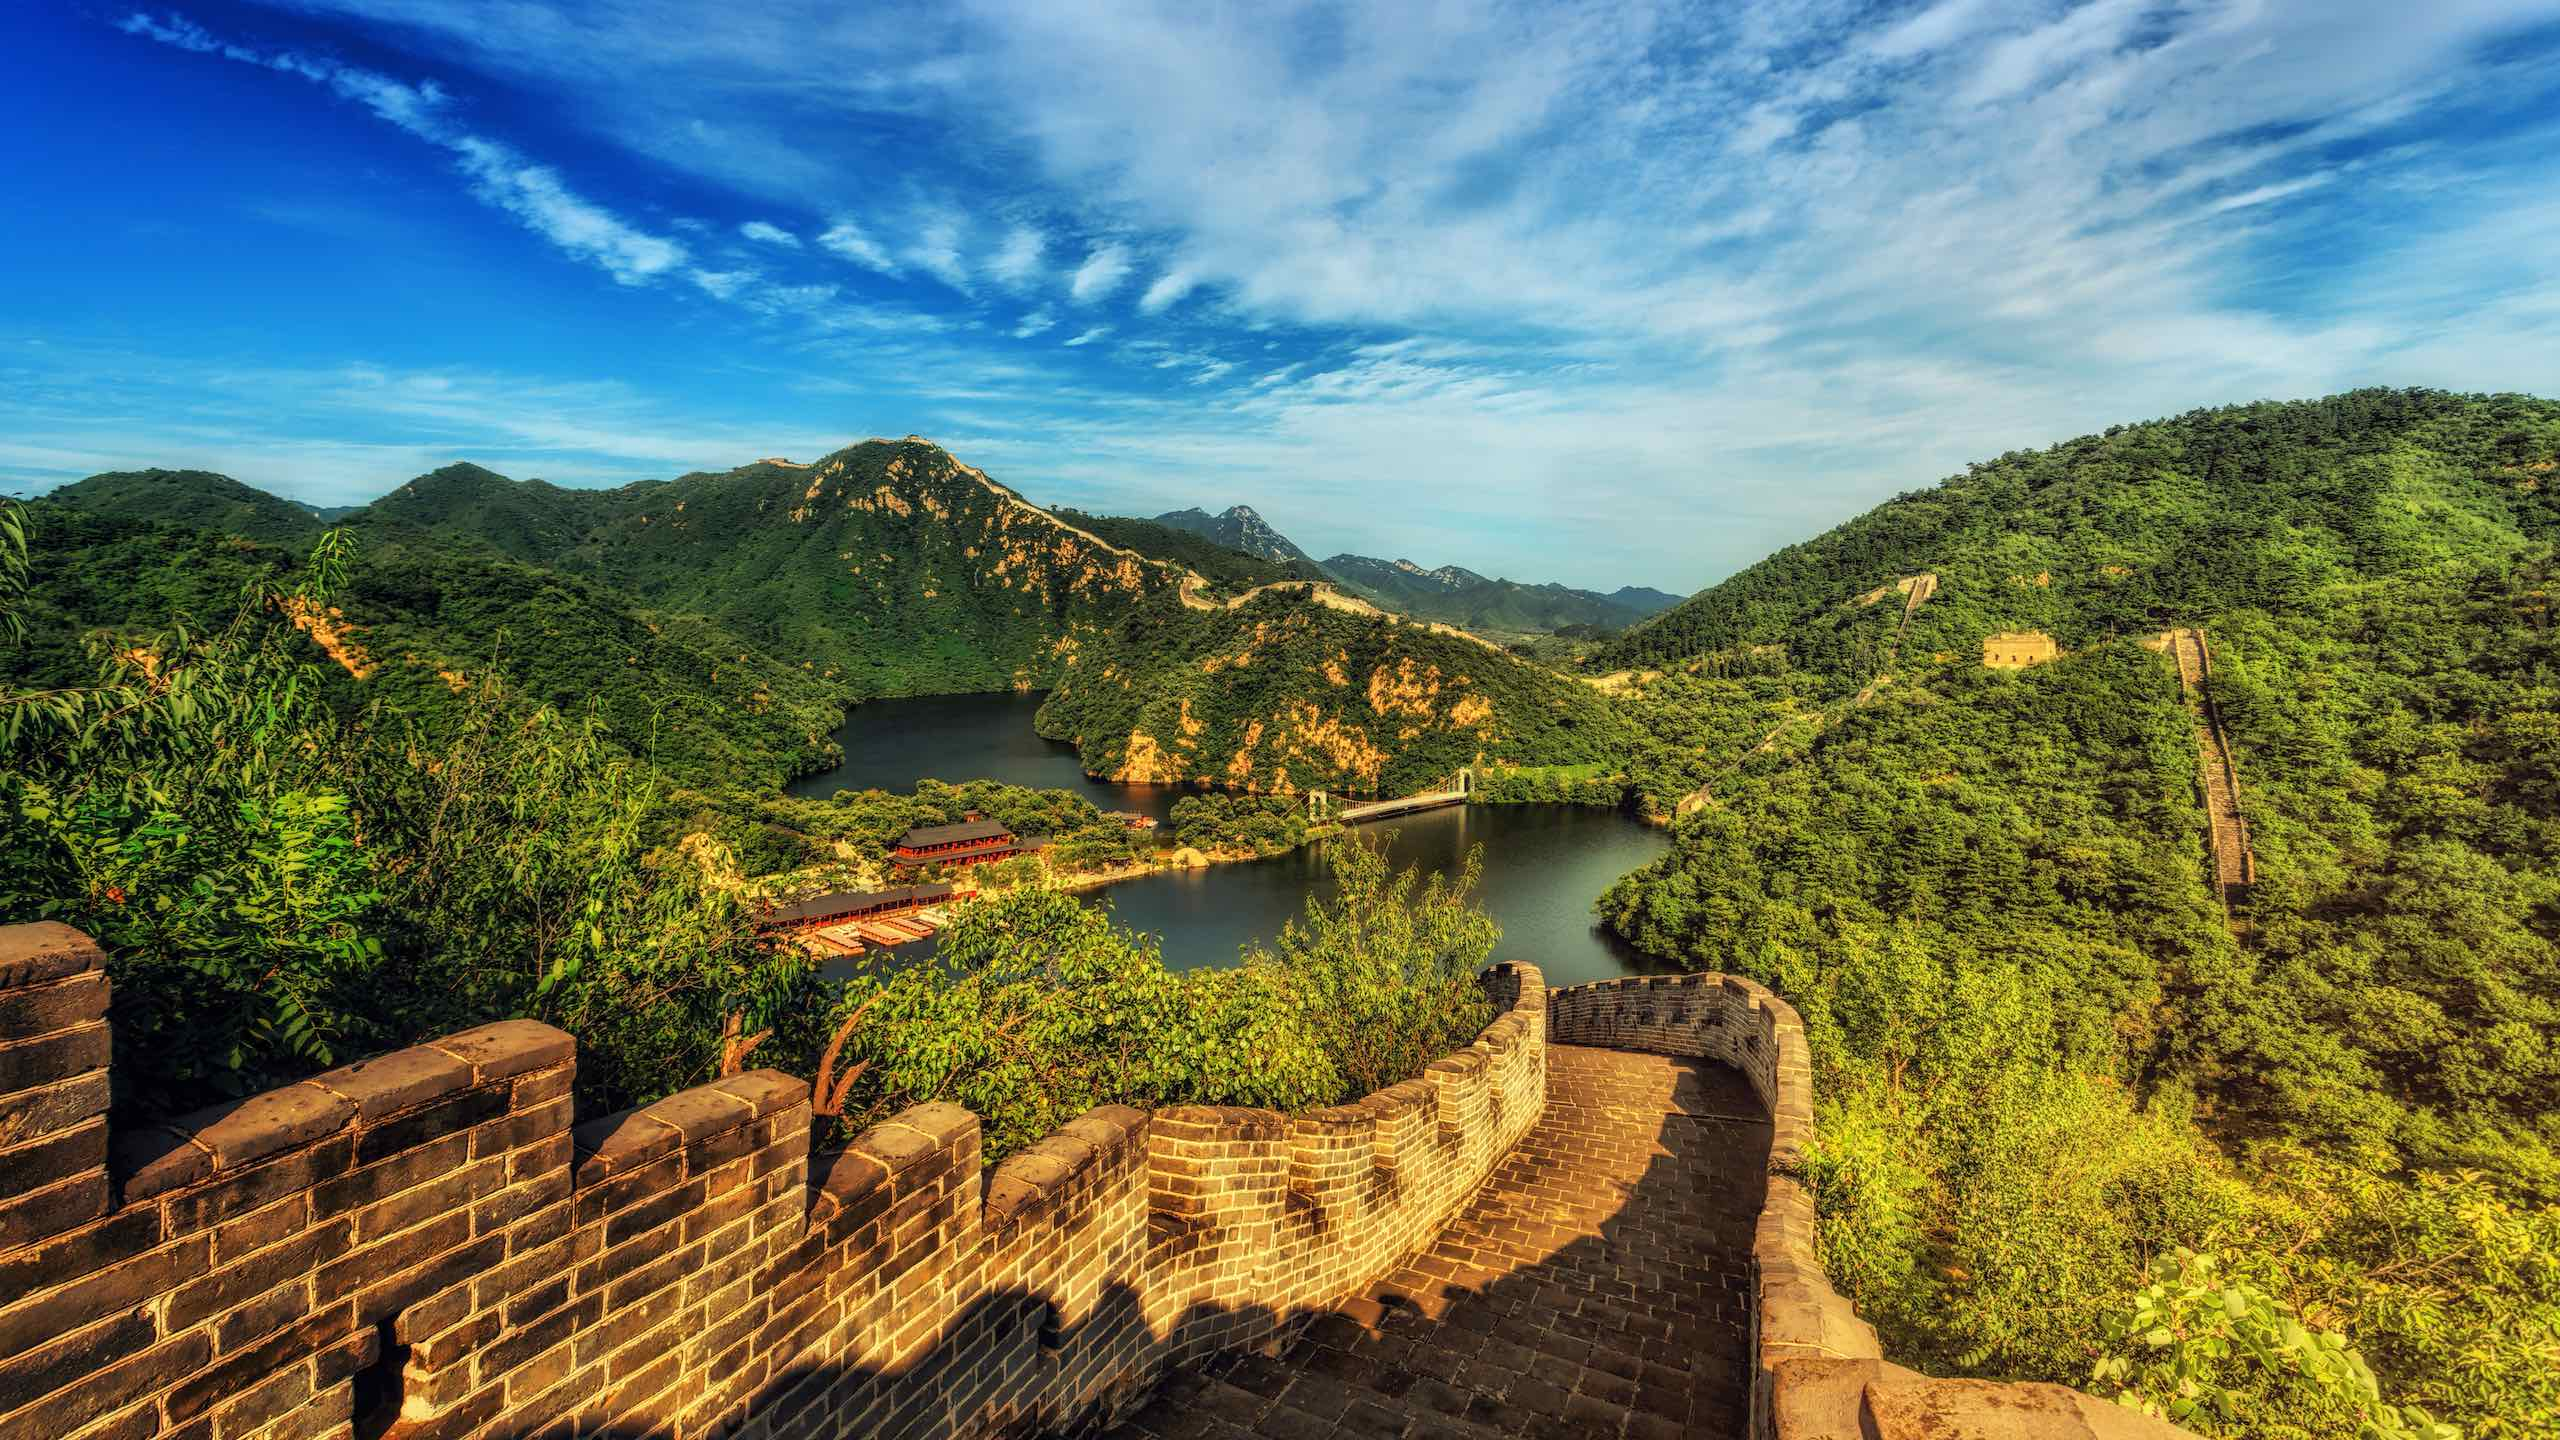 Great Wall of China | Photo: Johannes Plenio